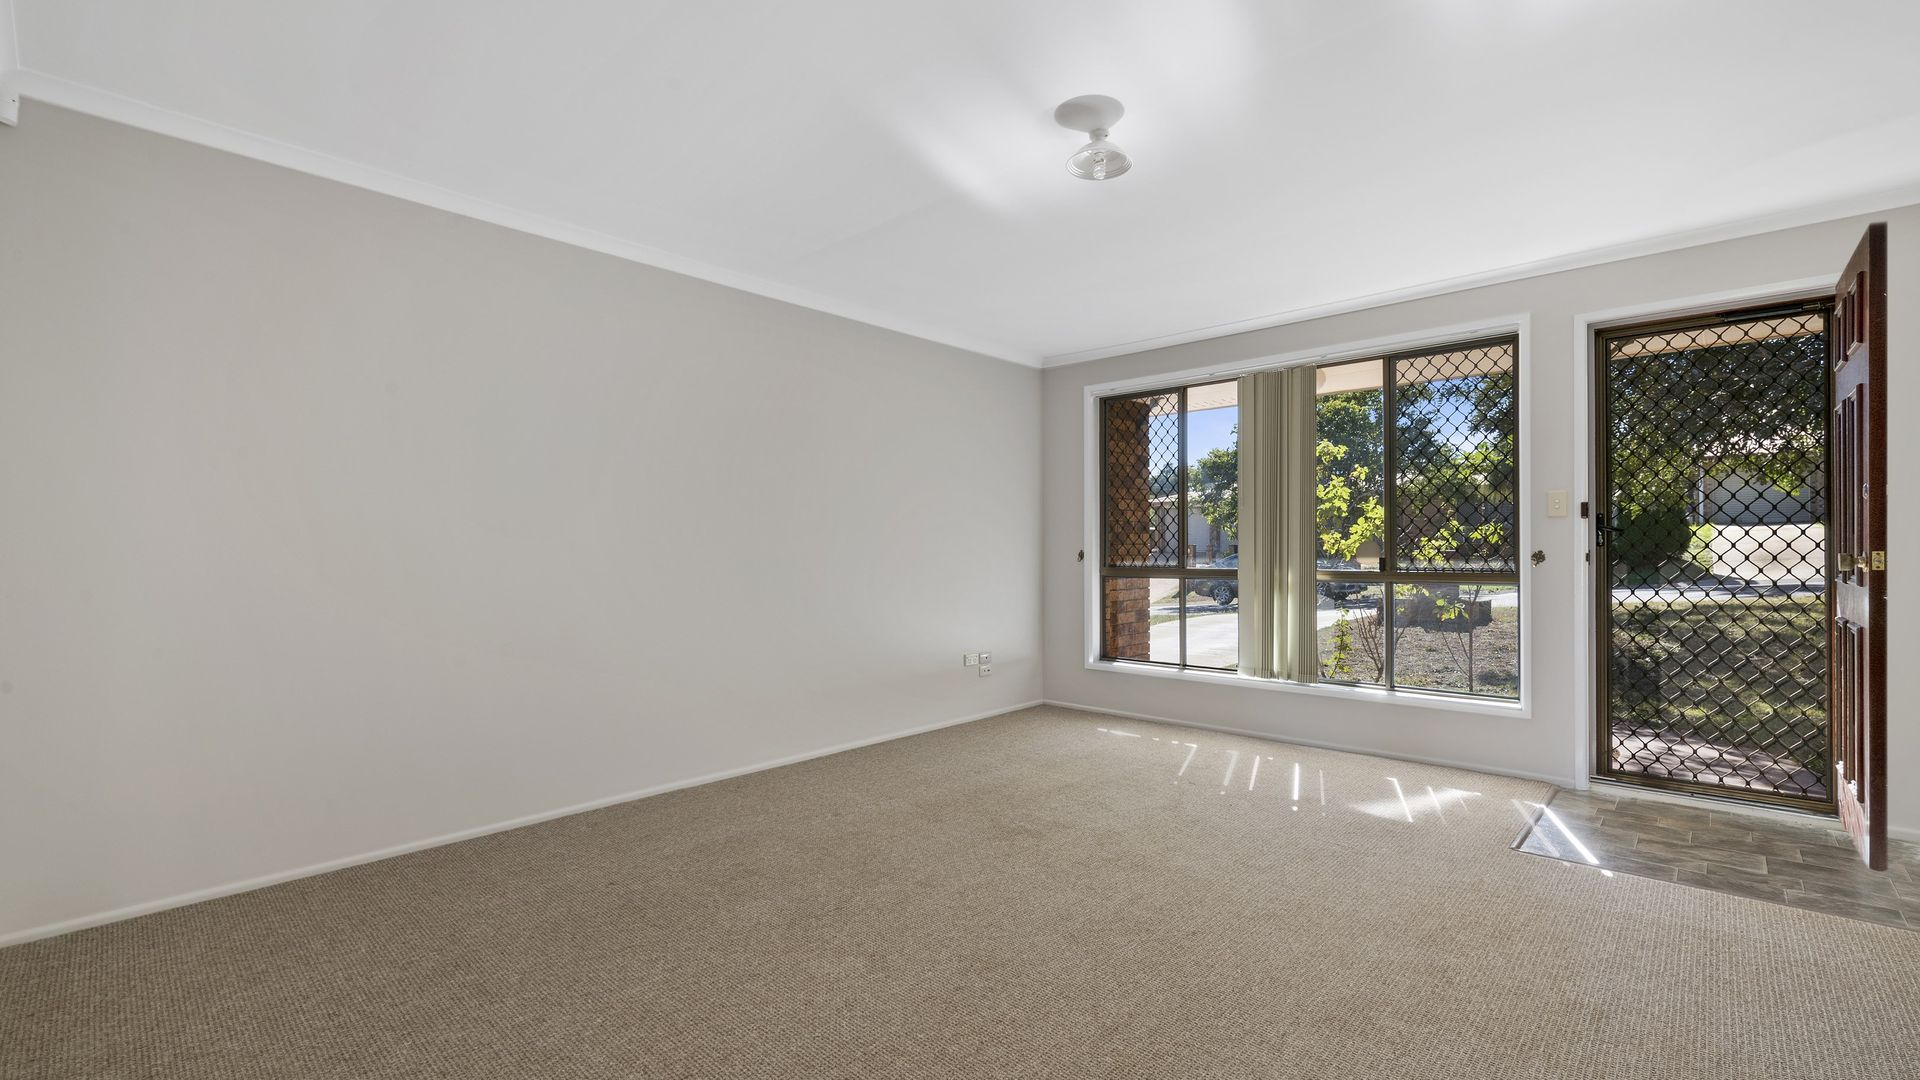 10 Ware Court, Darling Heights QLD 4350, Image 1